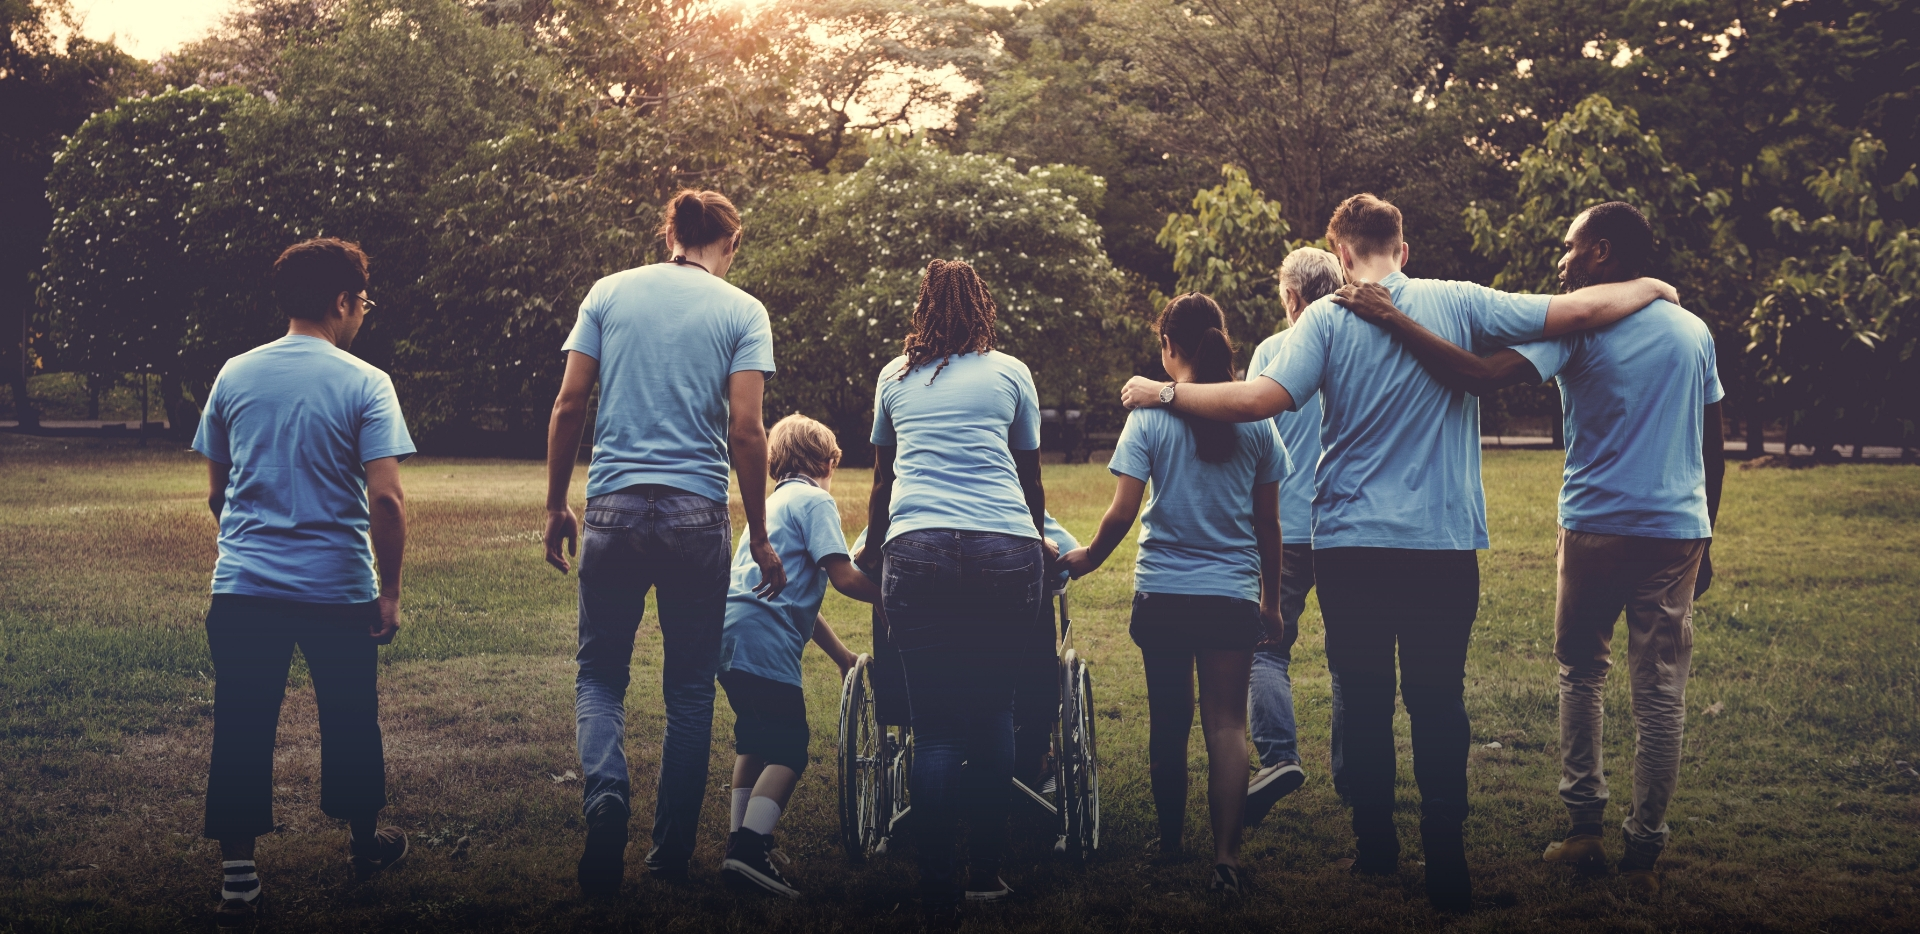 group of supportive friends and family wearing matching t-shirts push person in wheelchair across a field at a park